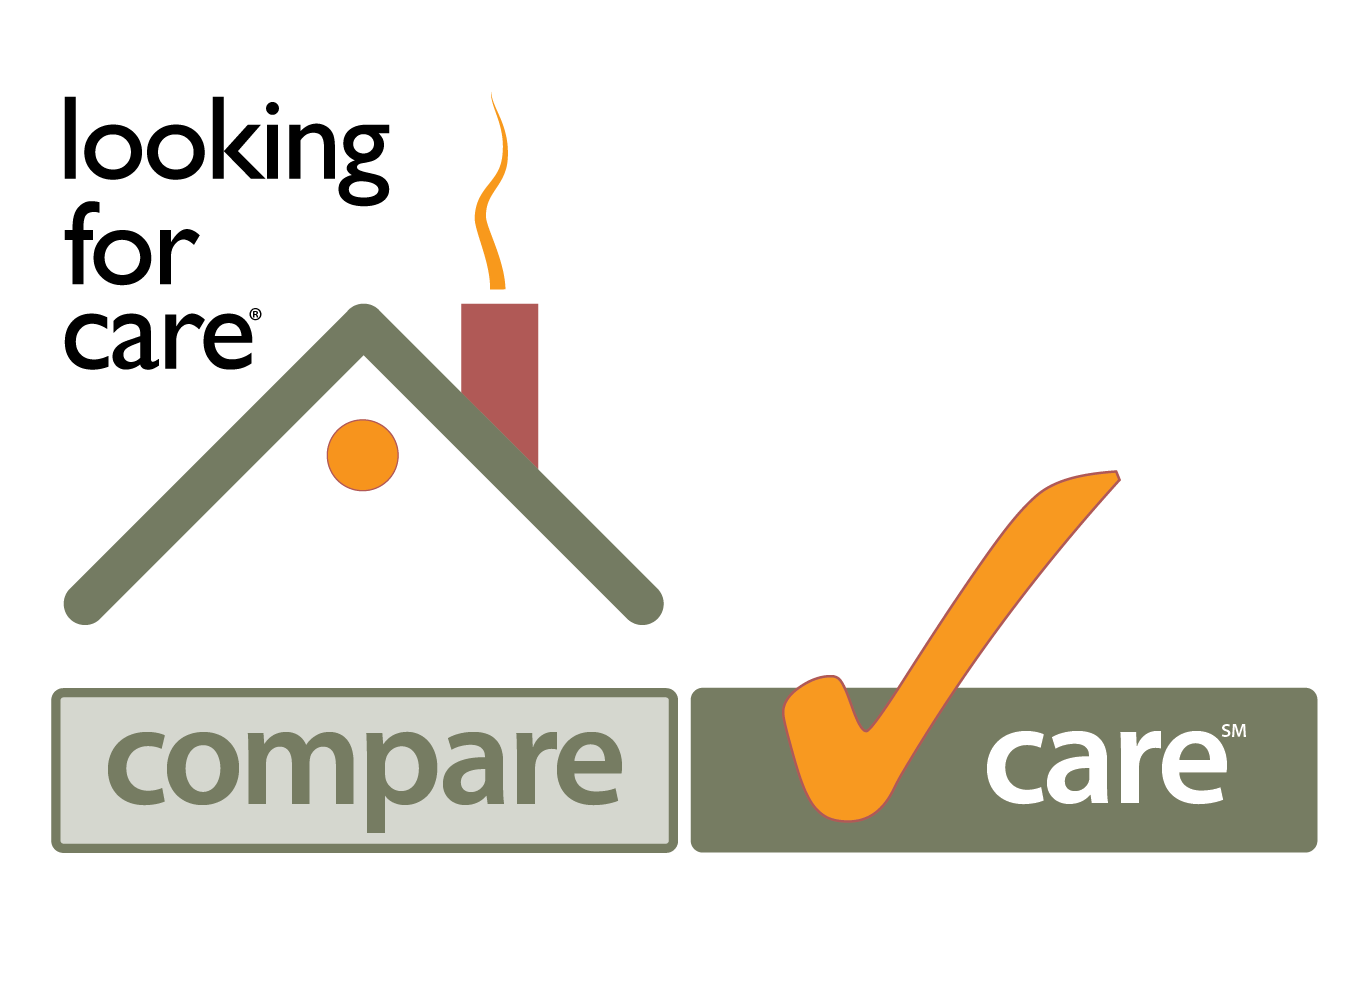 Looking for Care, Inc. Corporate Logo Transparent